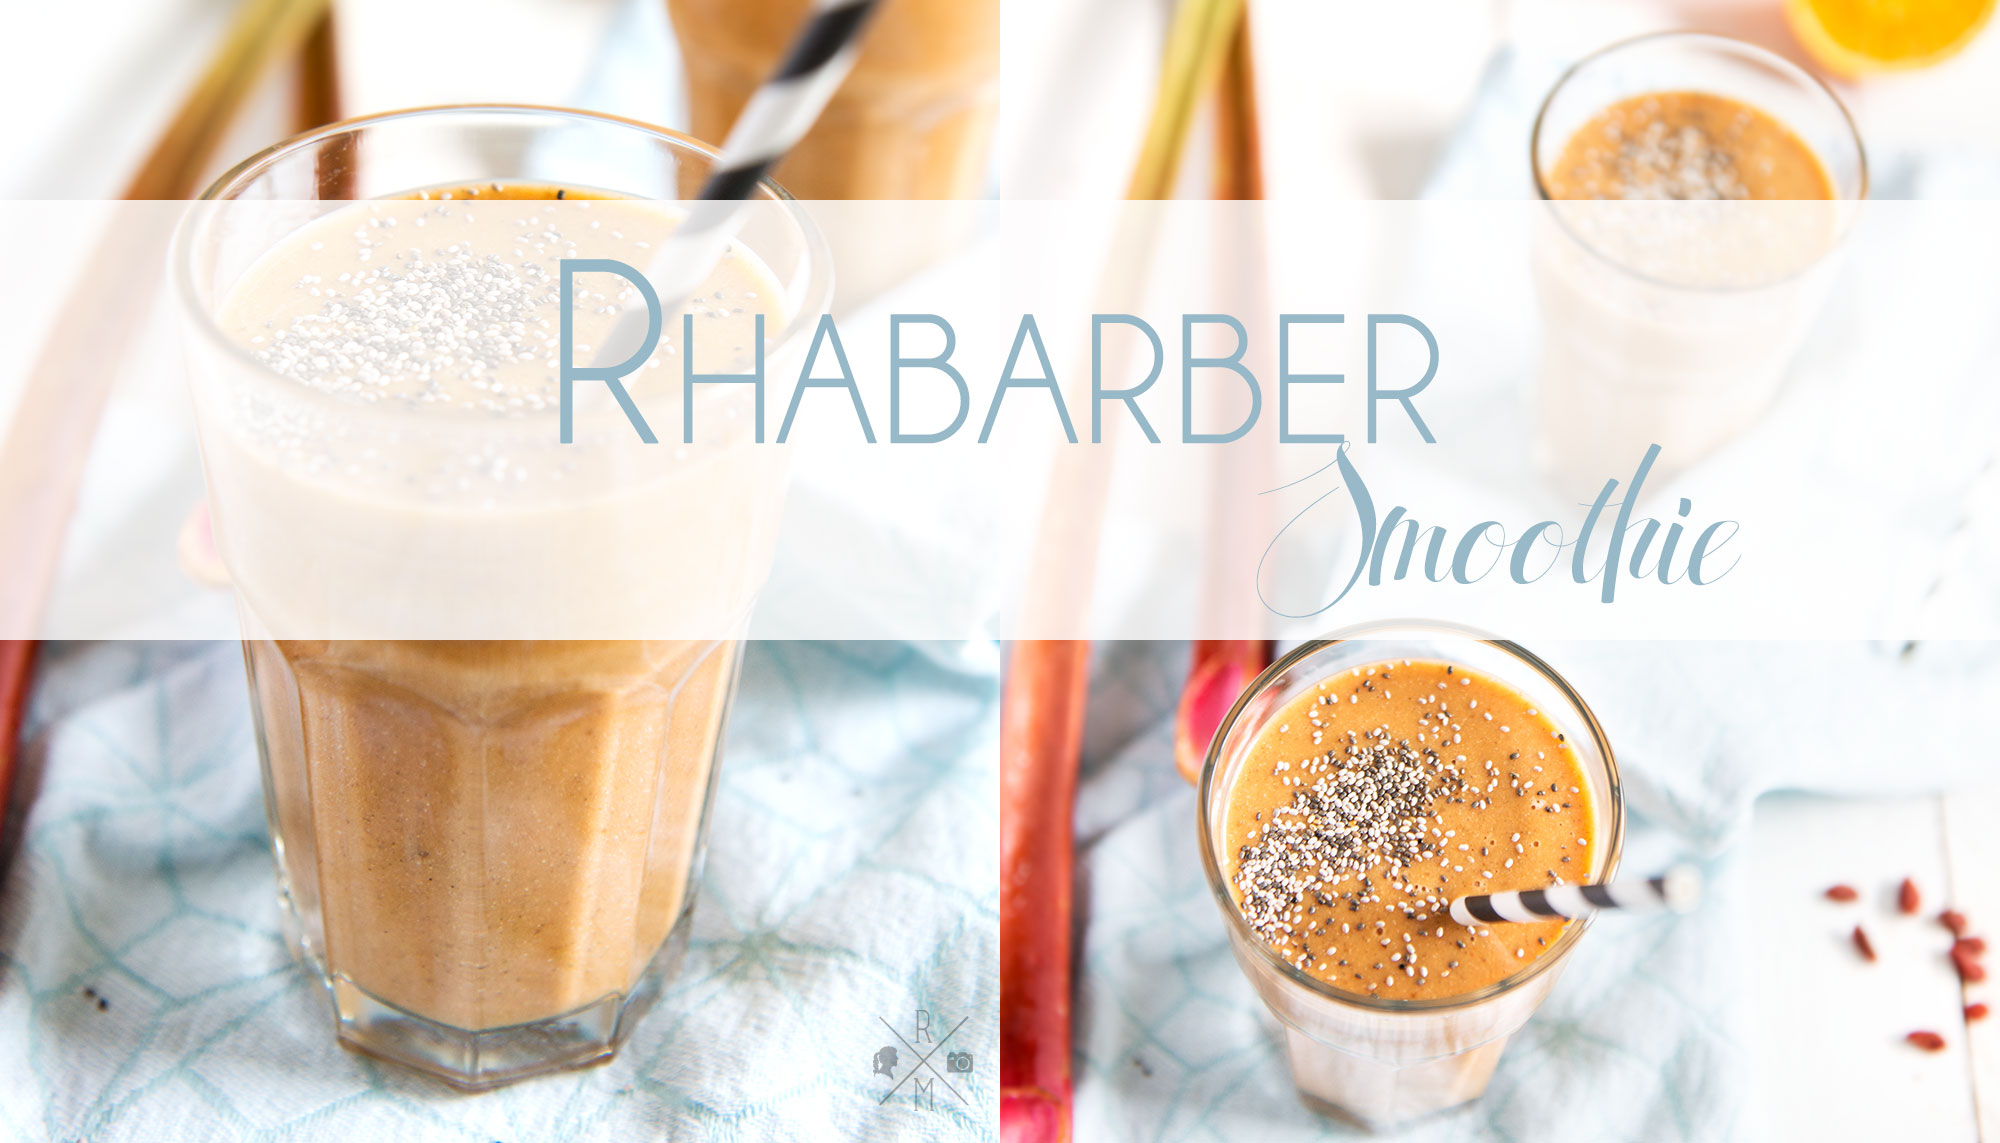 Rhabarber Smoothie (Thermomix Variante)